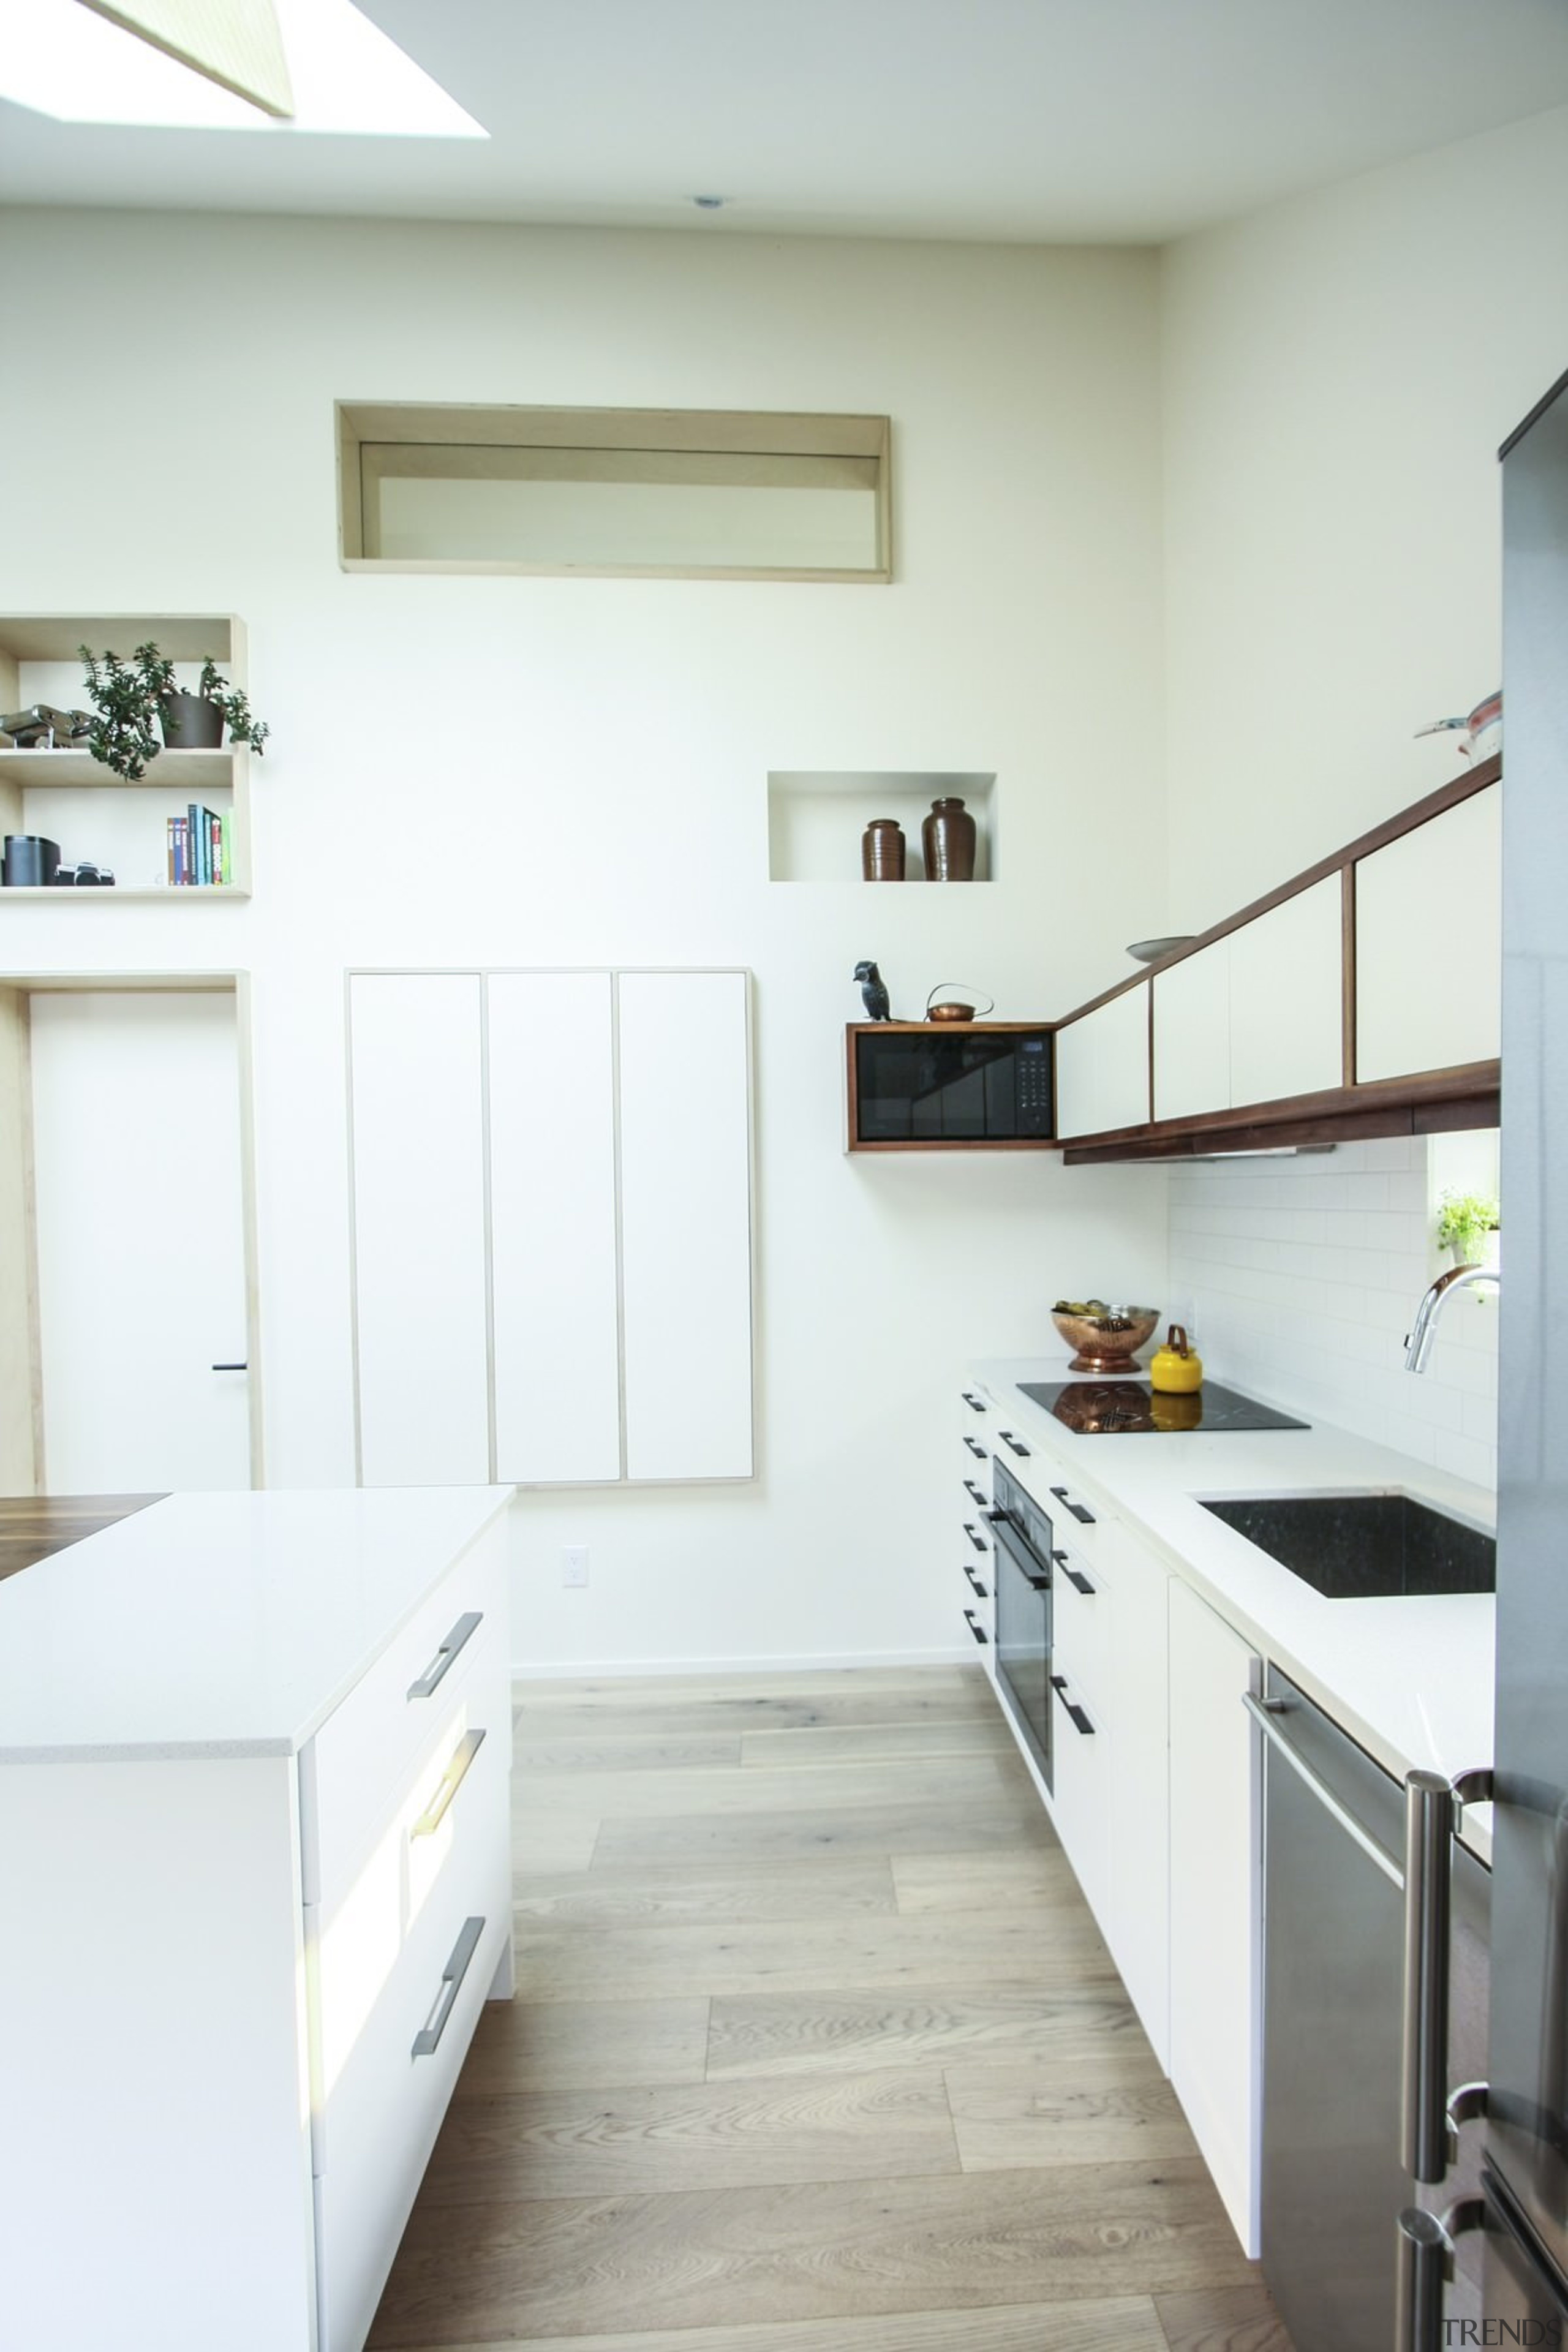 Clever storage spaces line the living area - countertop, daylighting, floor, home, house, interior design, kitchen, room, white, gray